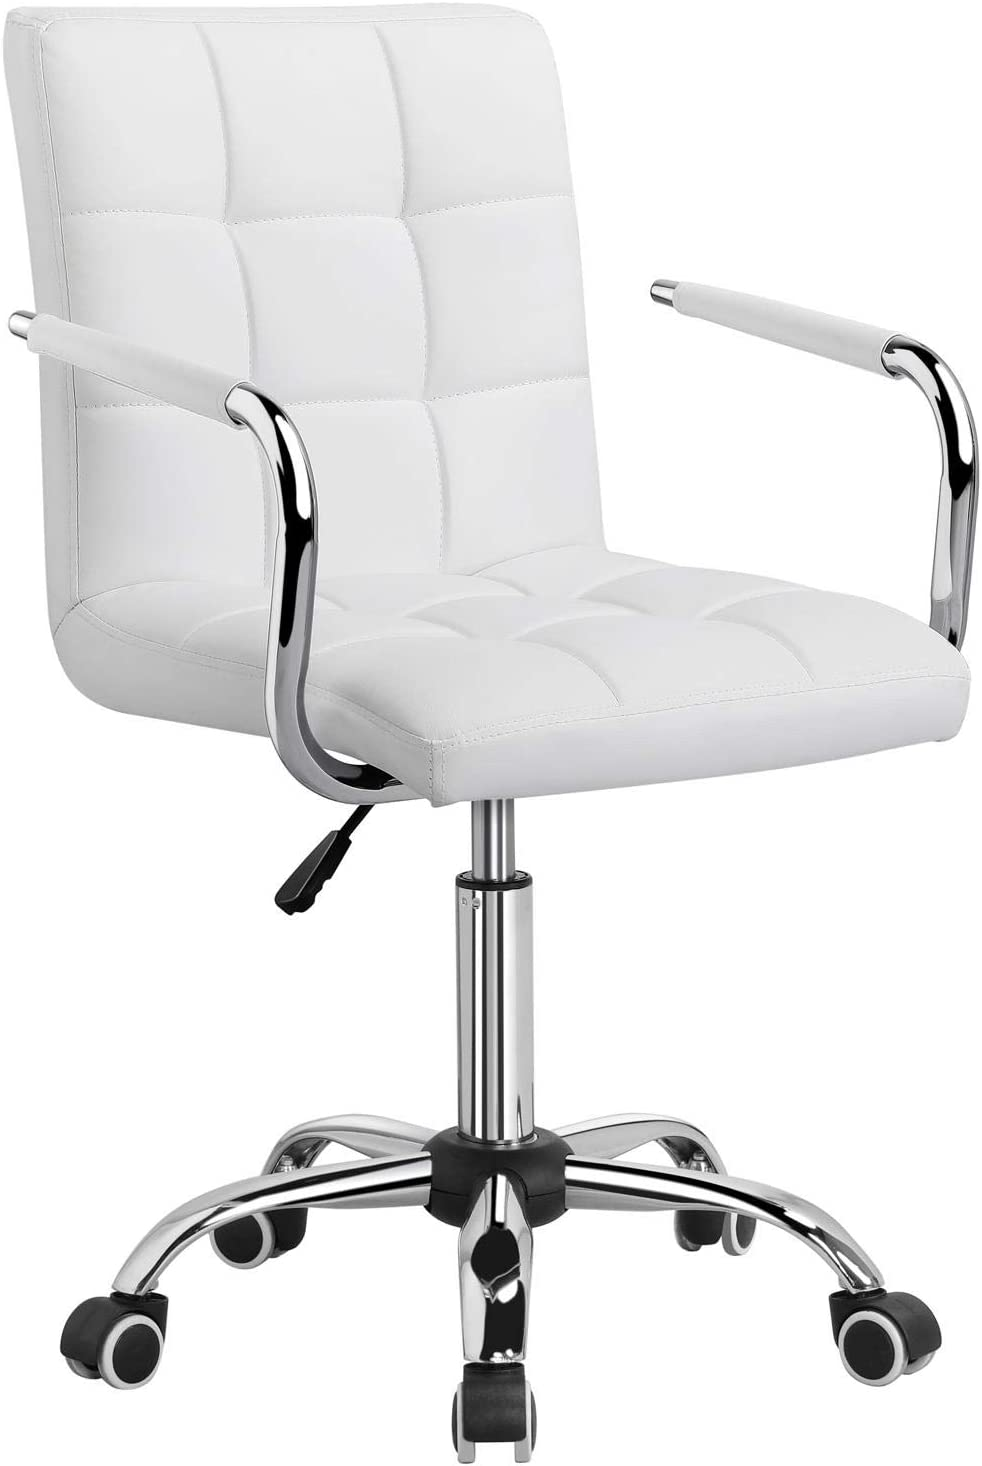 Yaheetech White Office Chair/Desk Chair With wheels Swivel Stool Chair for Desk Comfy Home Office Computer Desk Chair Modern Adjustable Leather Executive Chair with Armrest